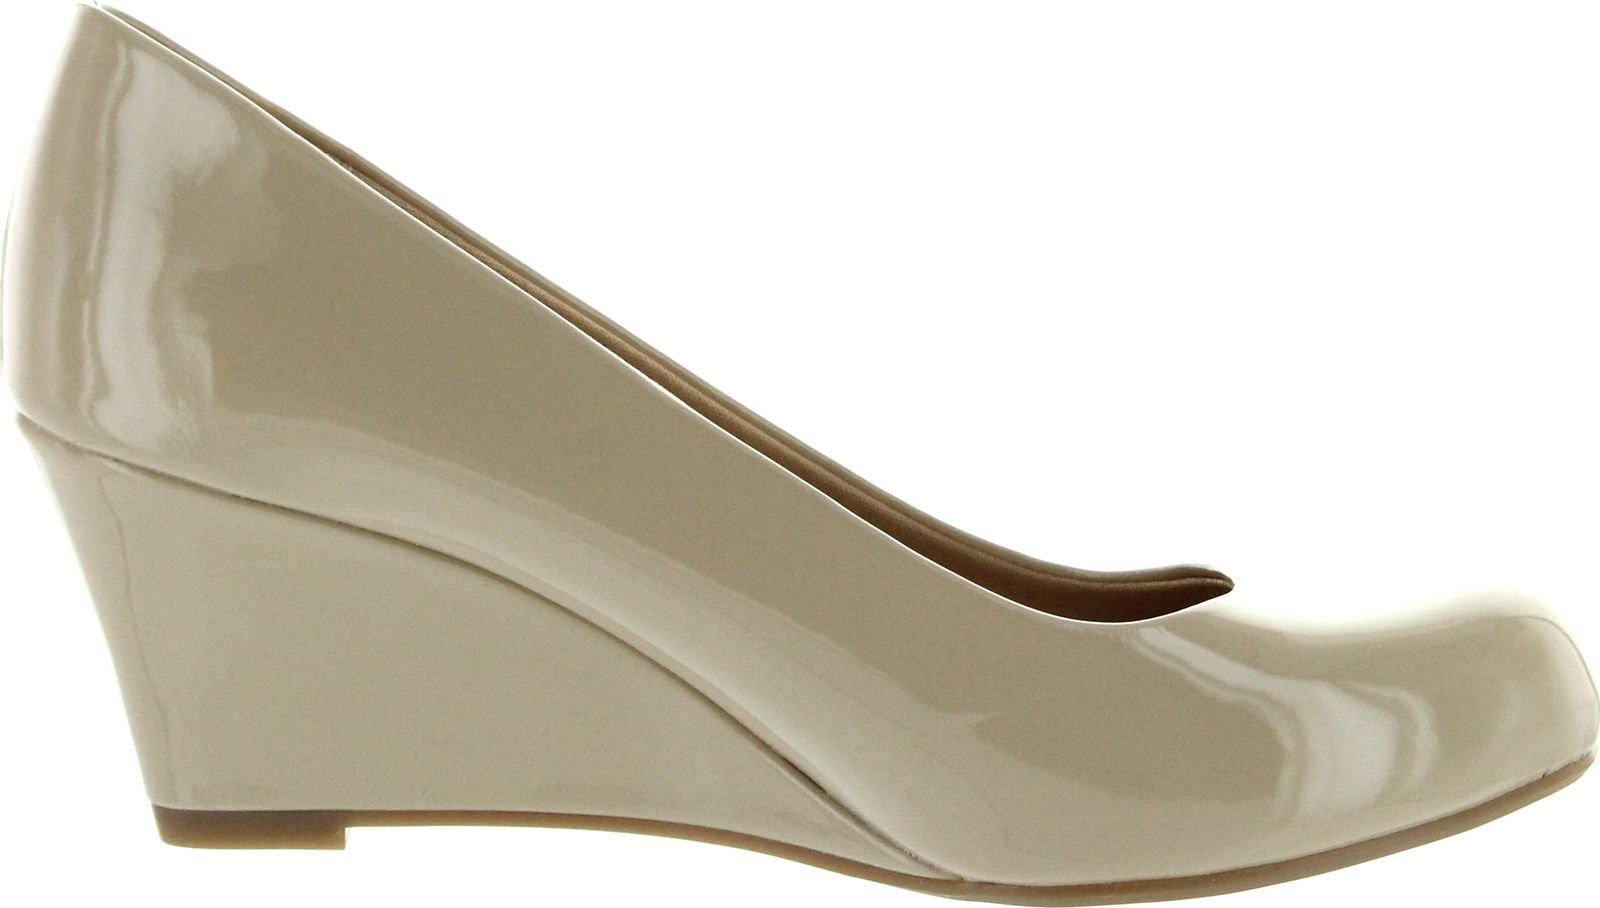 Forever Link Women's DORIS-22 Patent Round Toe Wedge Pumps,7.5 B(M) US,Beige by Forever (Image #2)